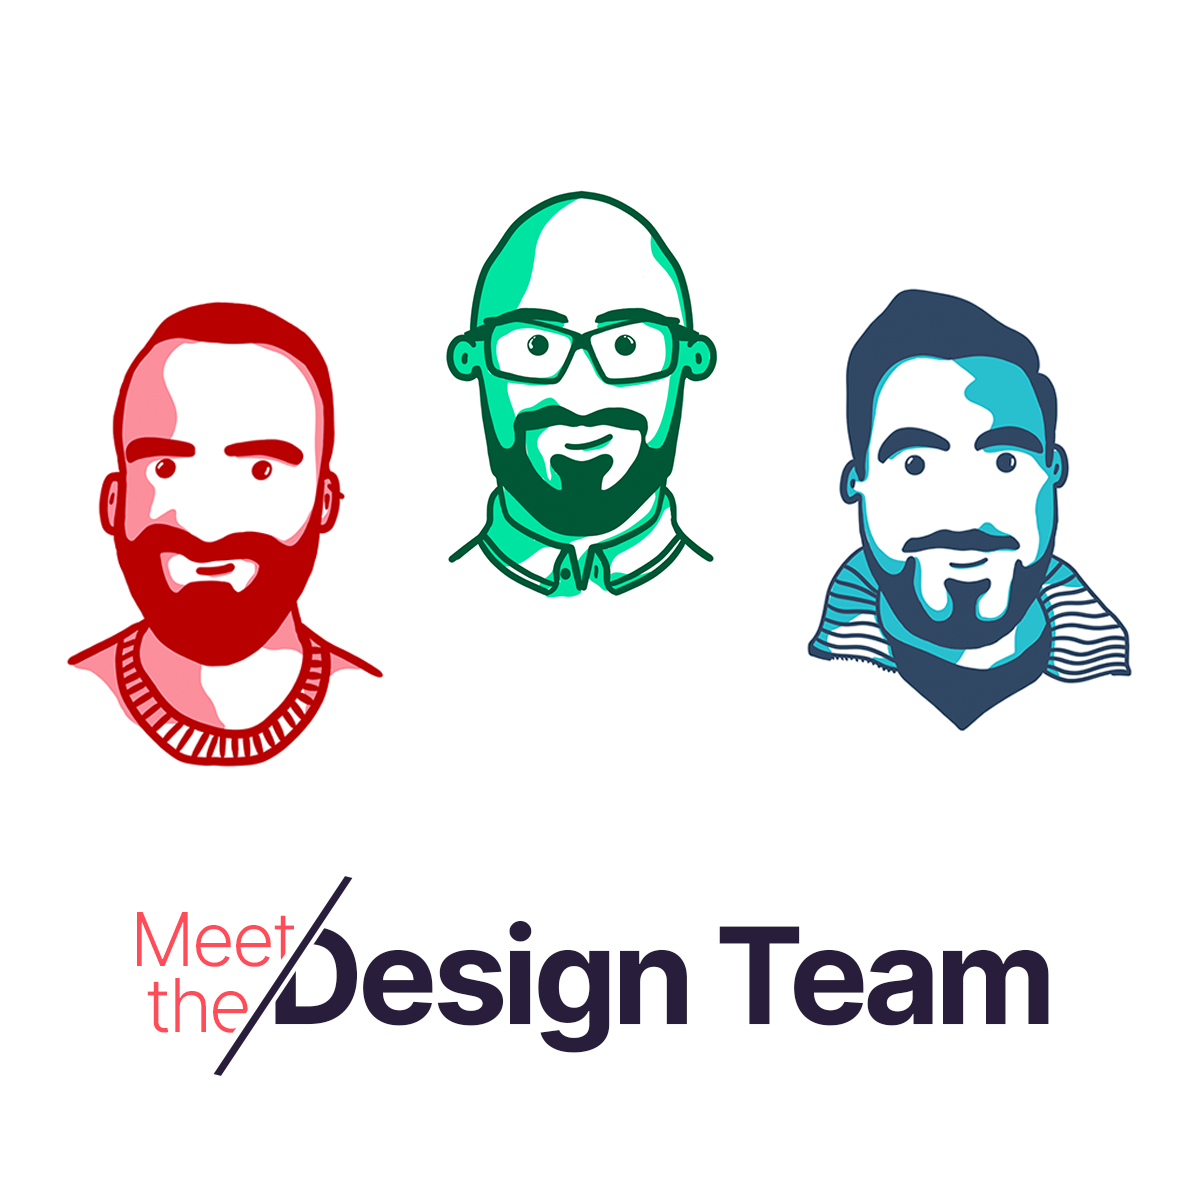 All tech companies need a design team. Say hello to ours…